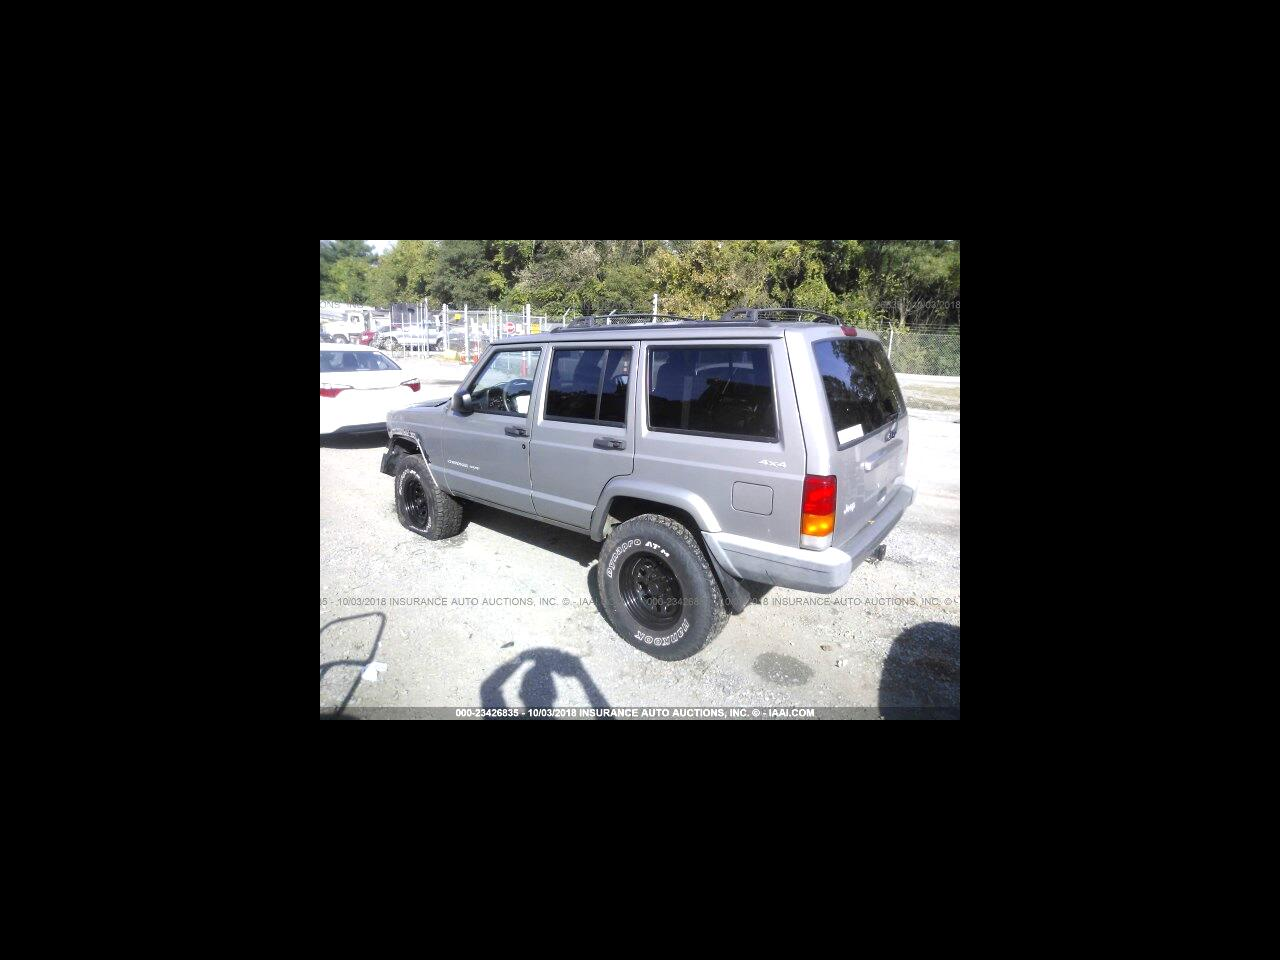 Used Cars For Sale Hollywood Fl 33023 Greenfield Usa Enterprise Llc 2000 Jeep Wrangler Fuel Filter Location Cherokee Sport 4 Door 4wd